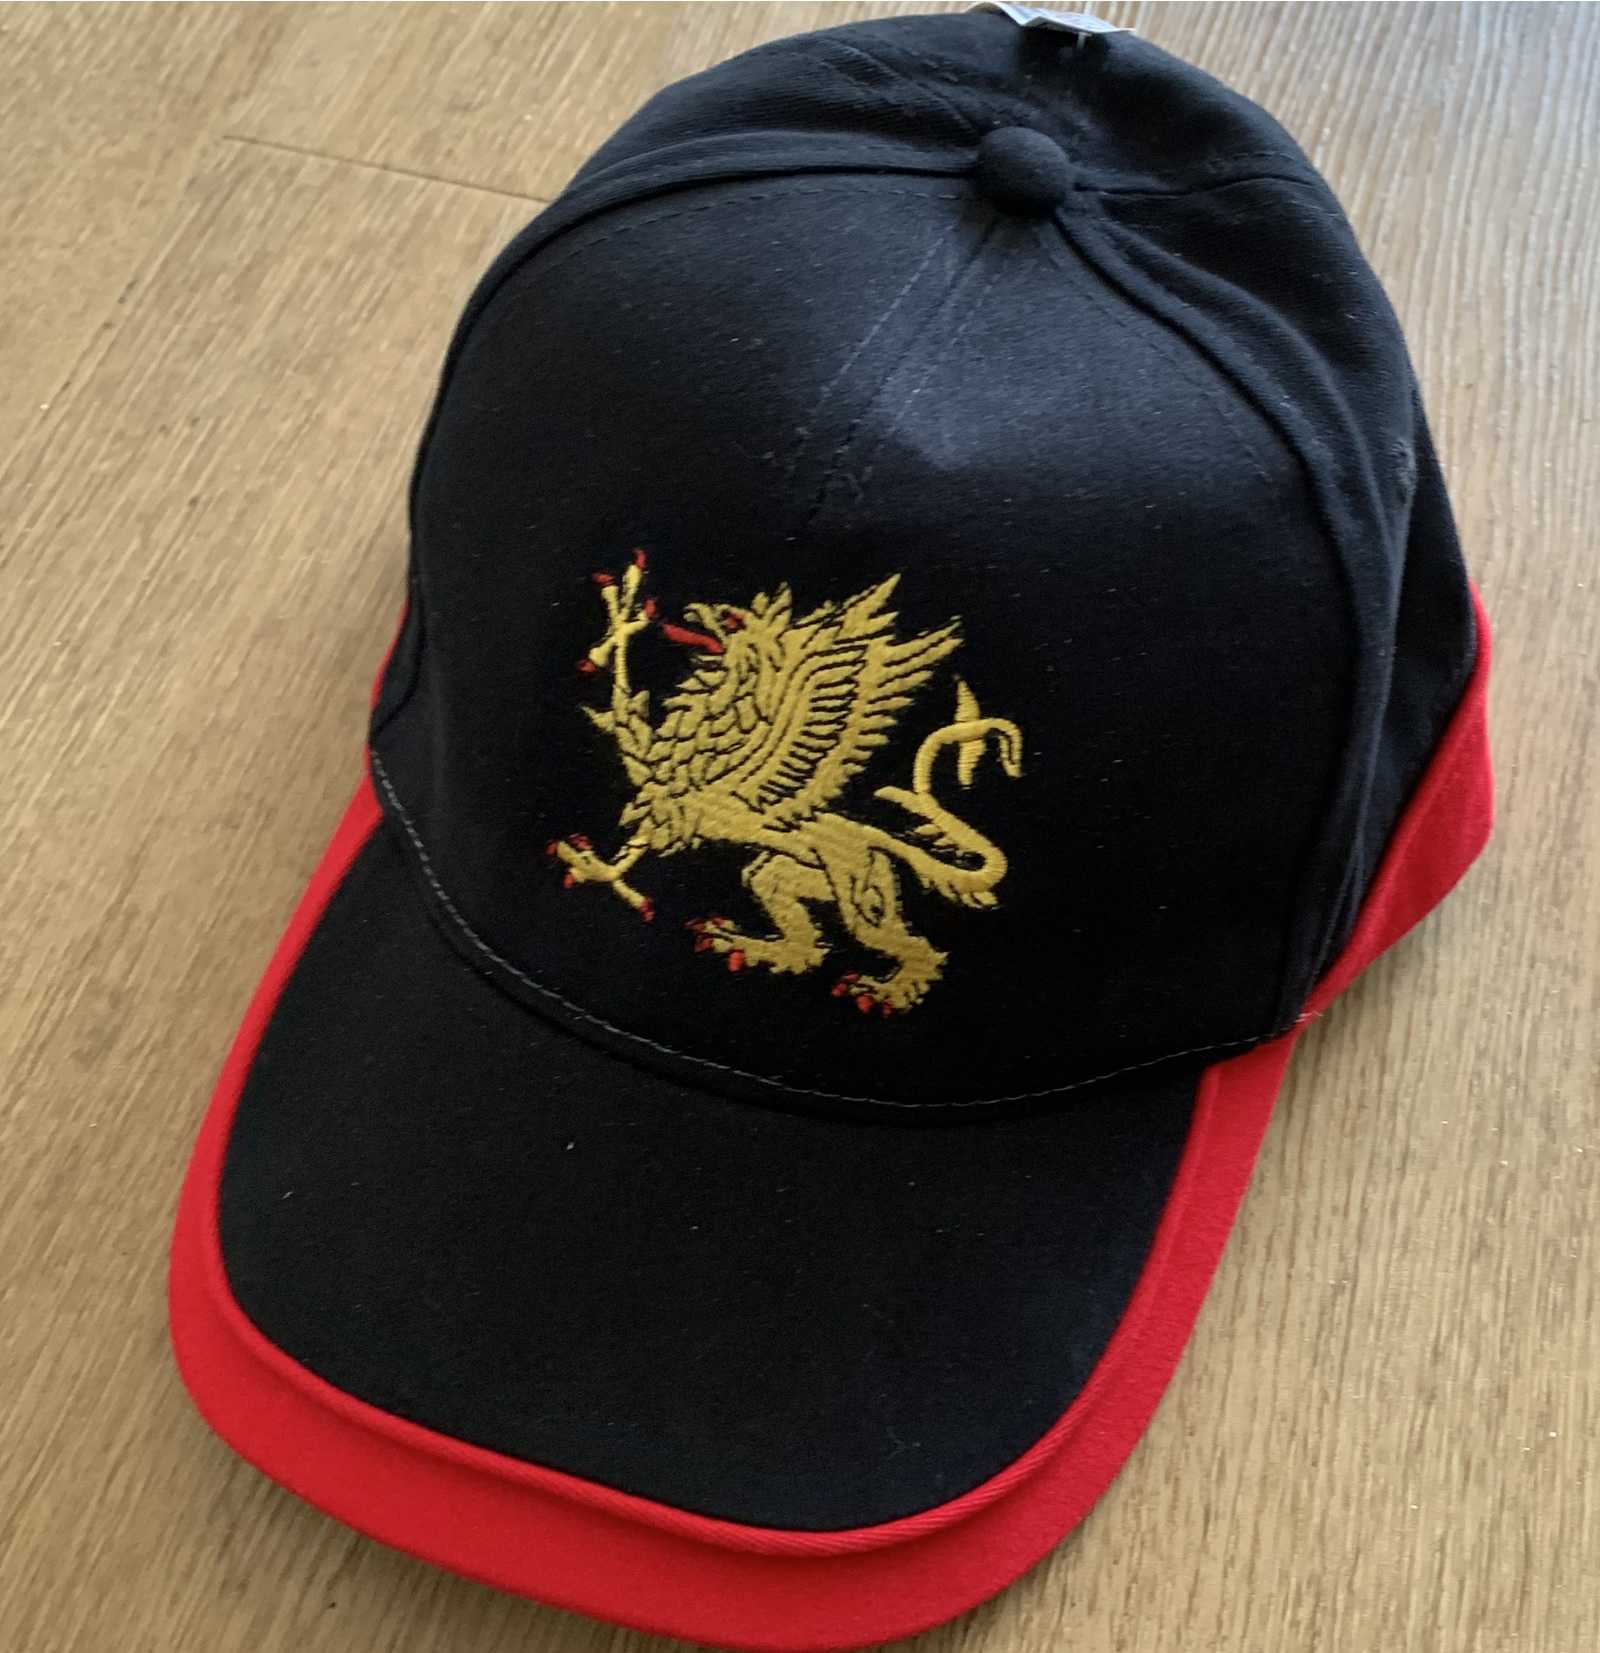 Black/Red Embroidered griffin cap